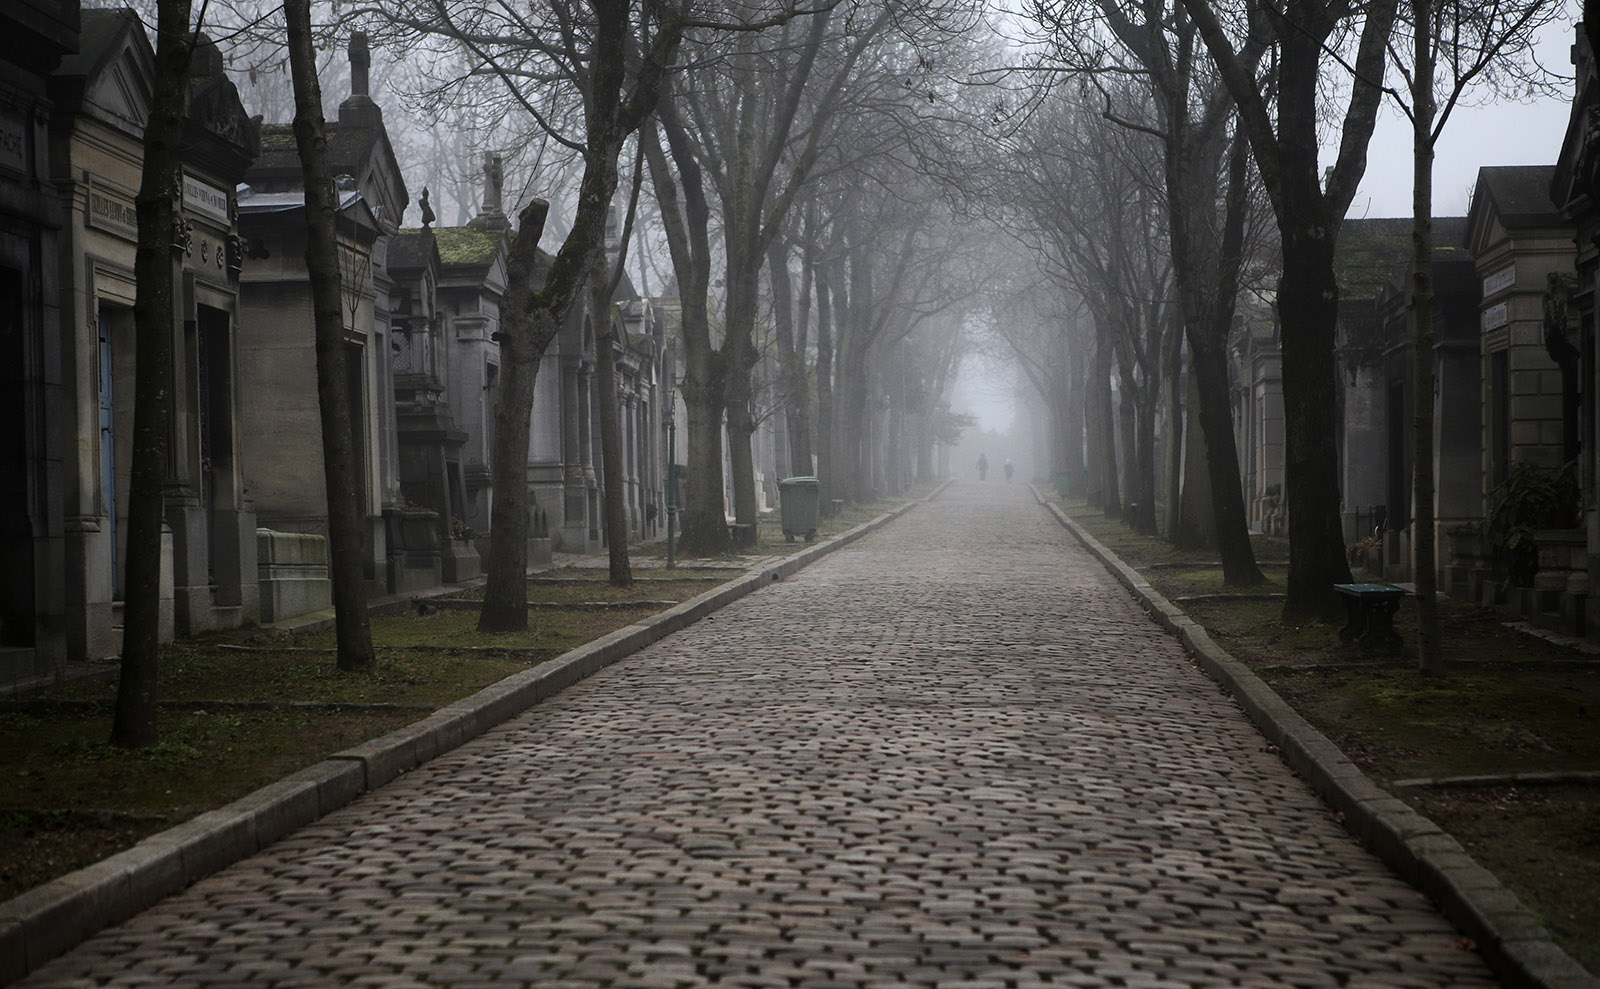 Père Lachaise, the Real Manderley, Mary Shelley, Postcard Art & More: Endnotes 23 October